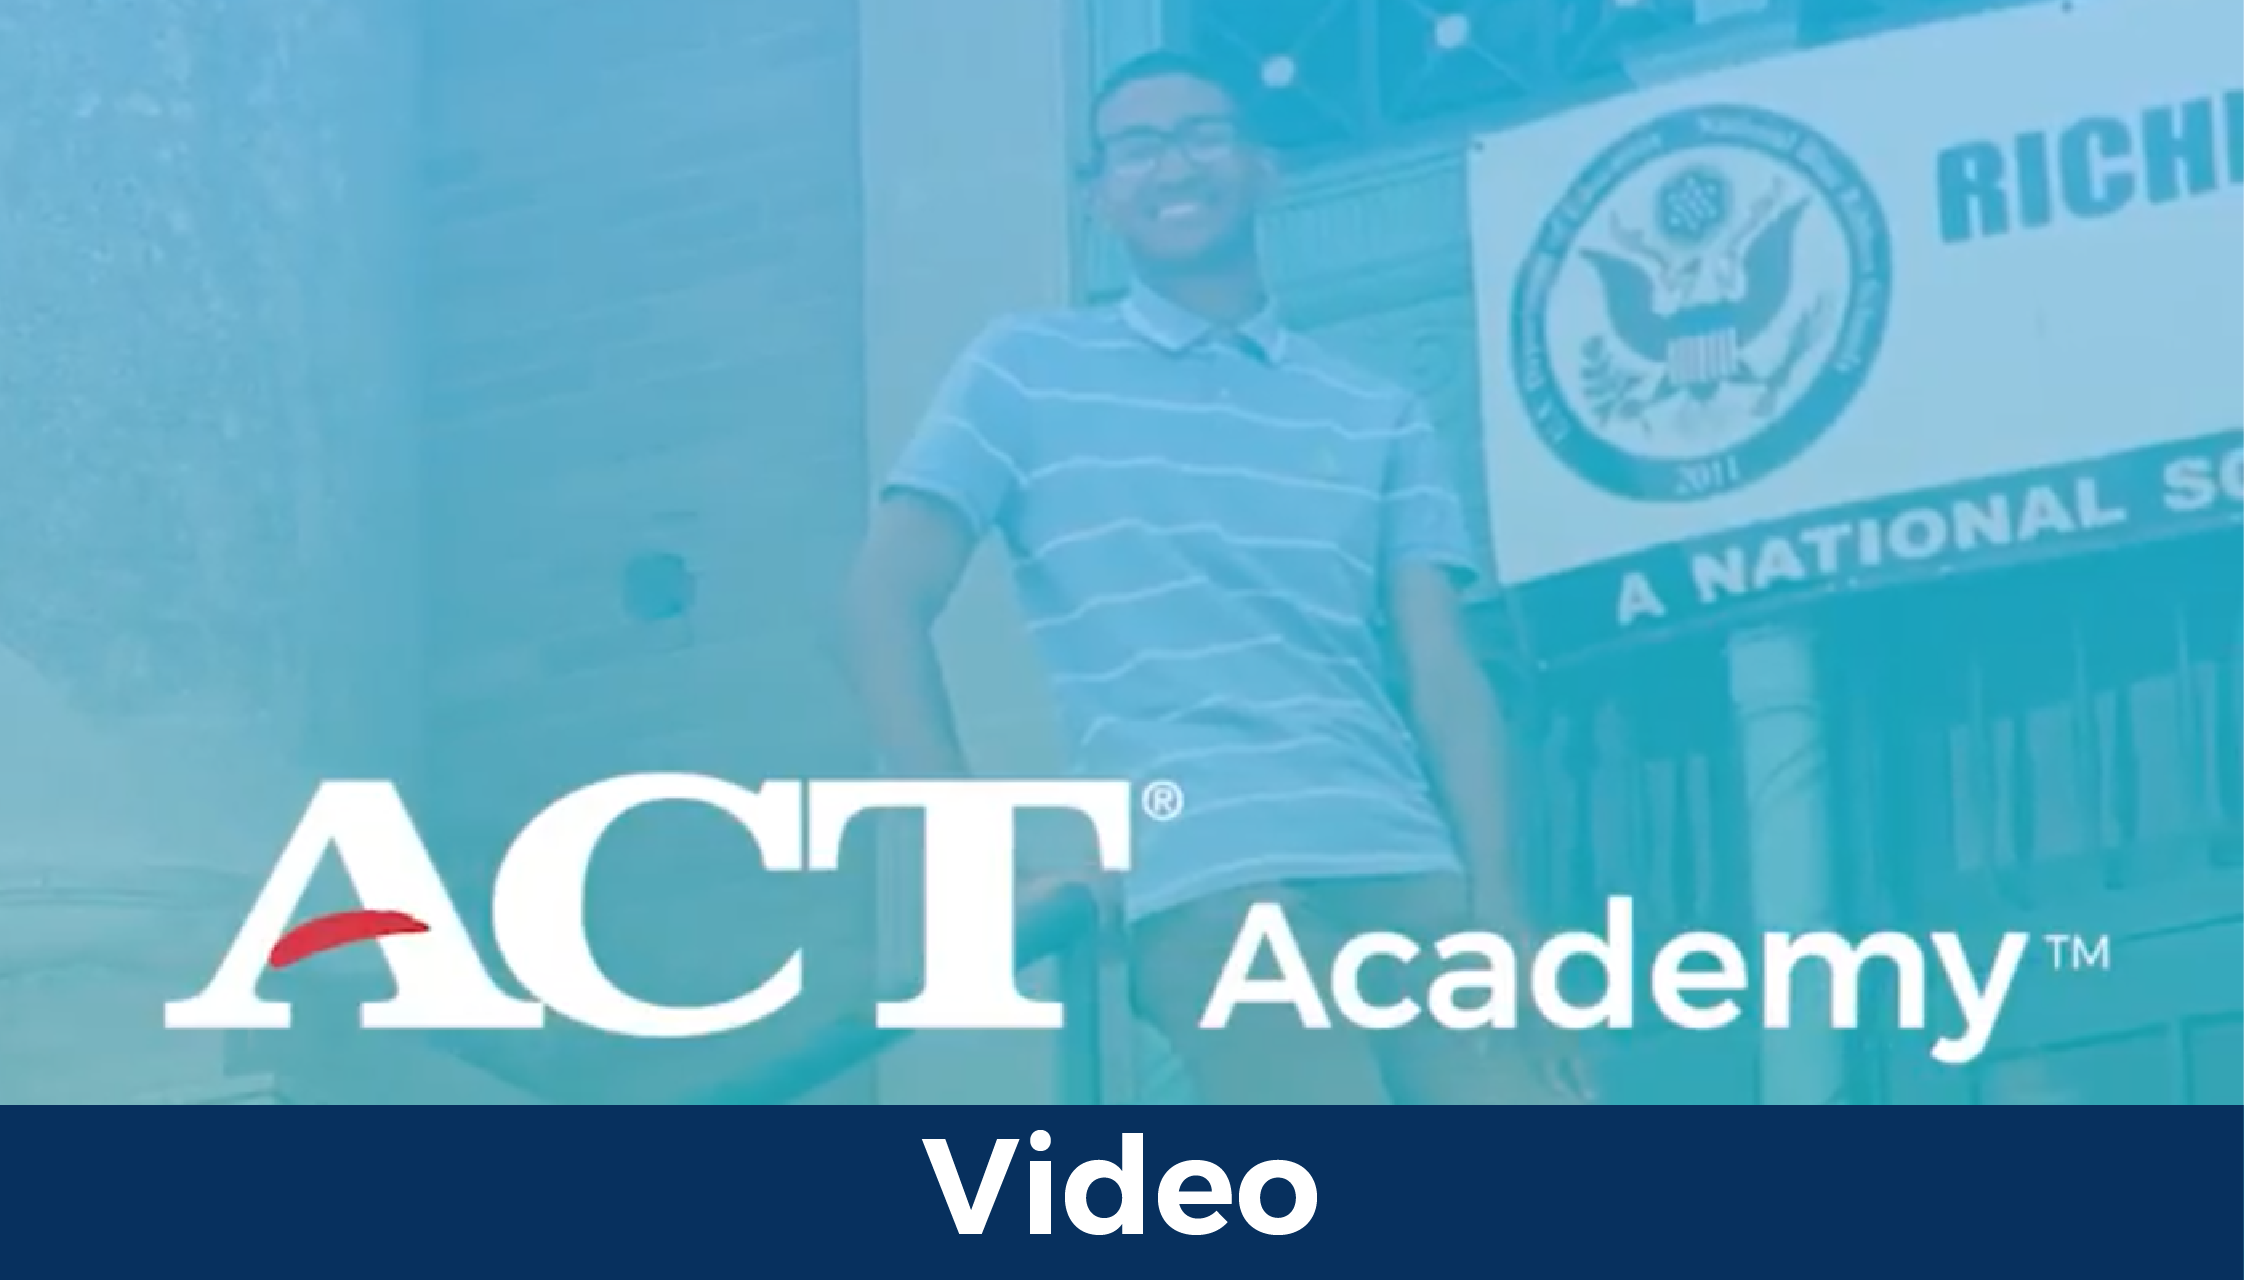 ACT Academy Video